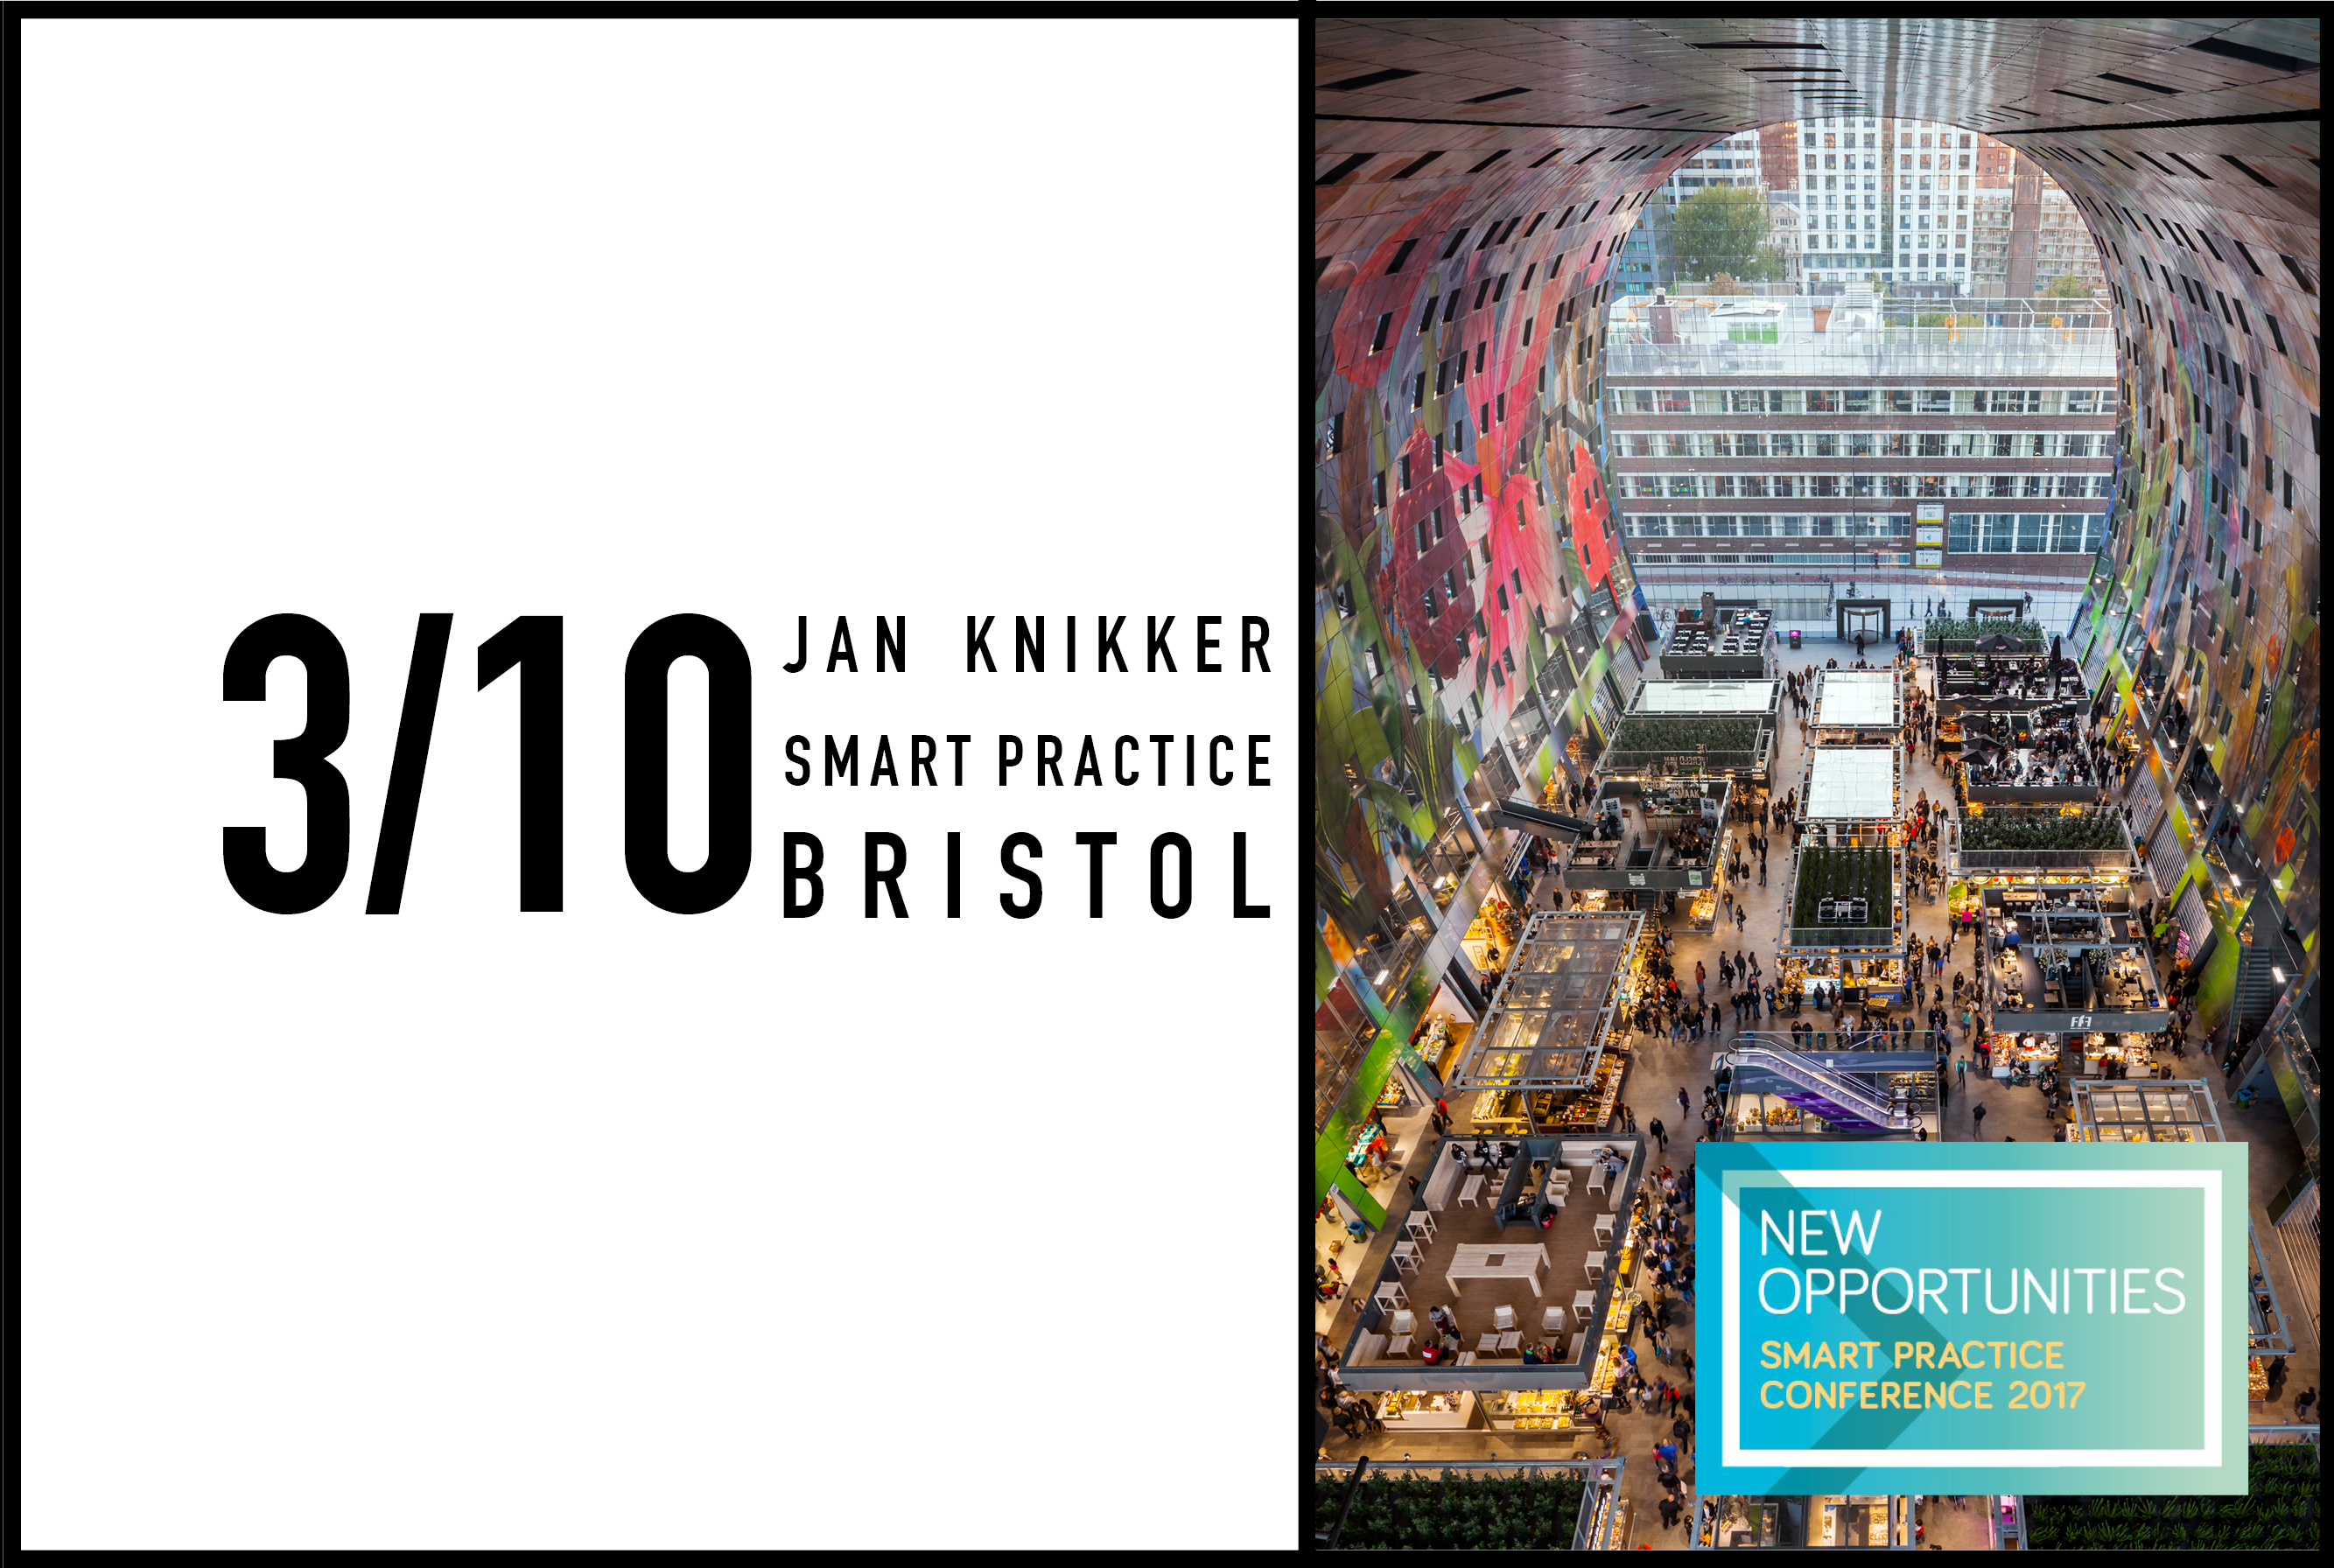 Jan Knikker to be keynote speaker at Riba's Smart Practice Conference 2017: New Opportunities, 3 October 2017